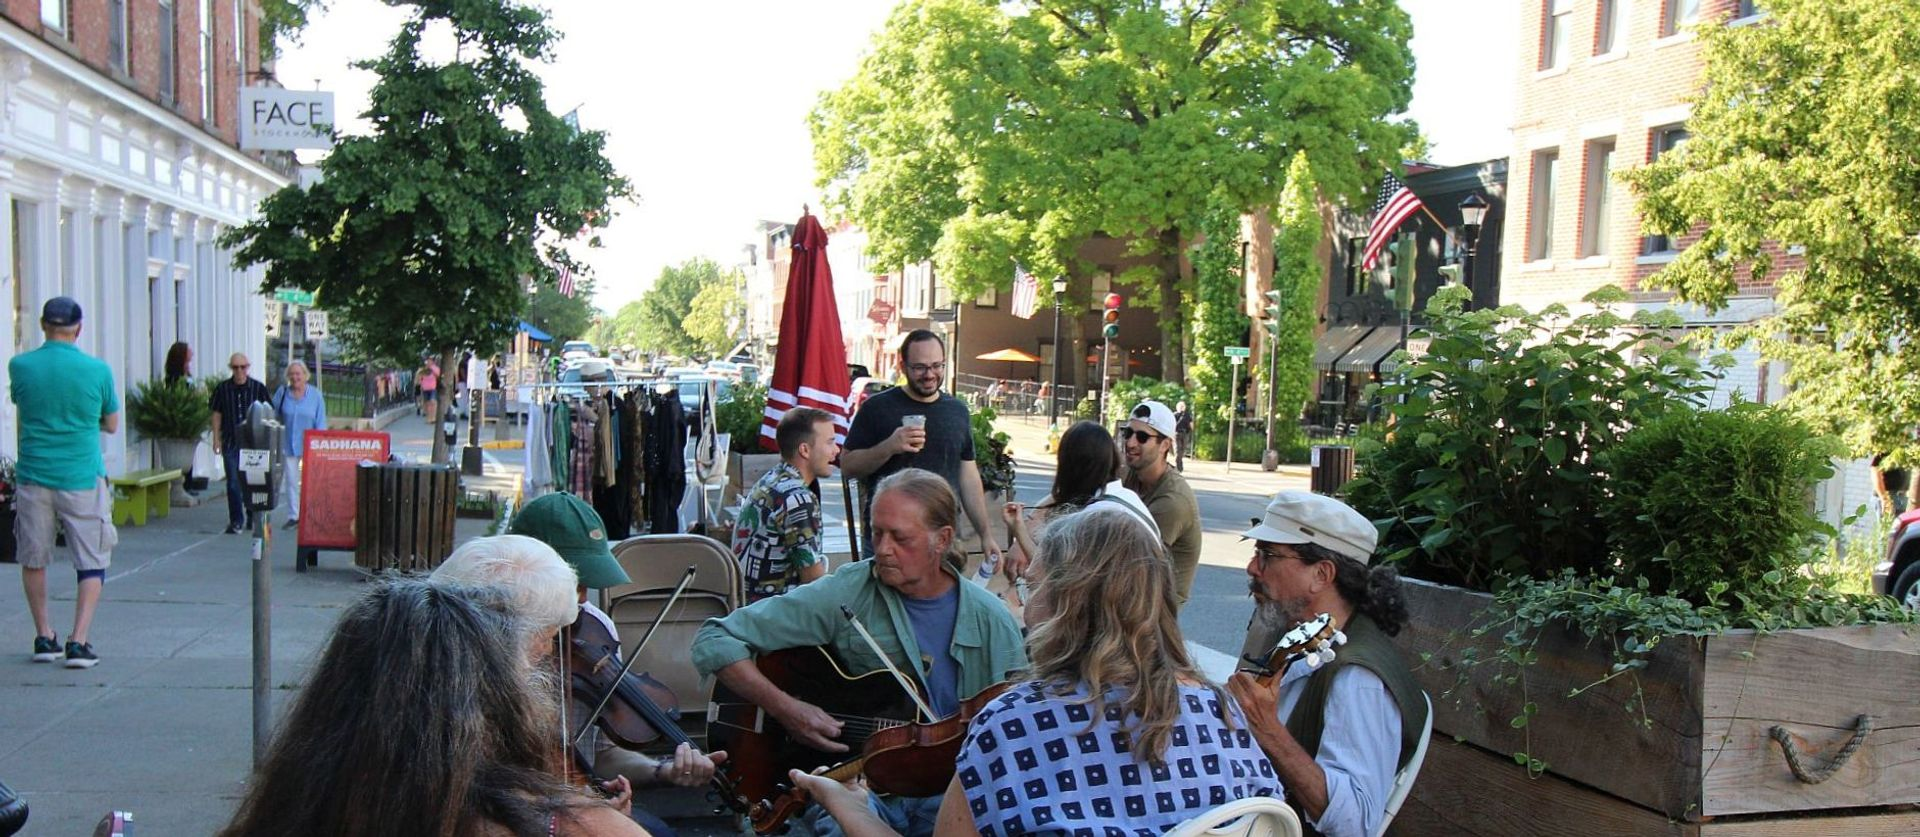 Buskers perform on the street during the Second Saturday Hudson Gallery Crawl in June 2021 Photo: Barbara Reina